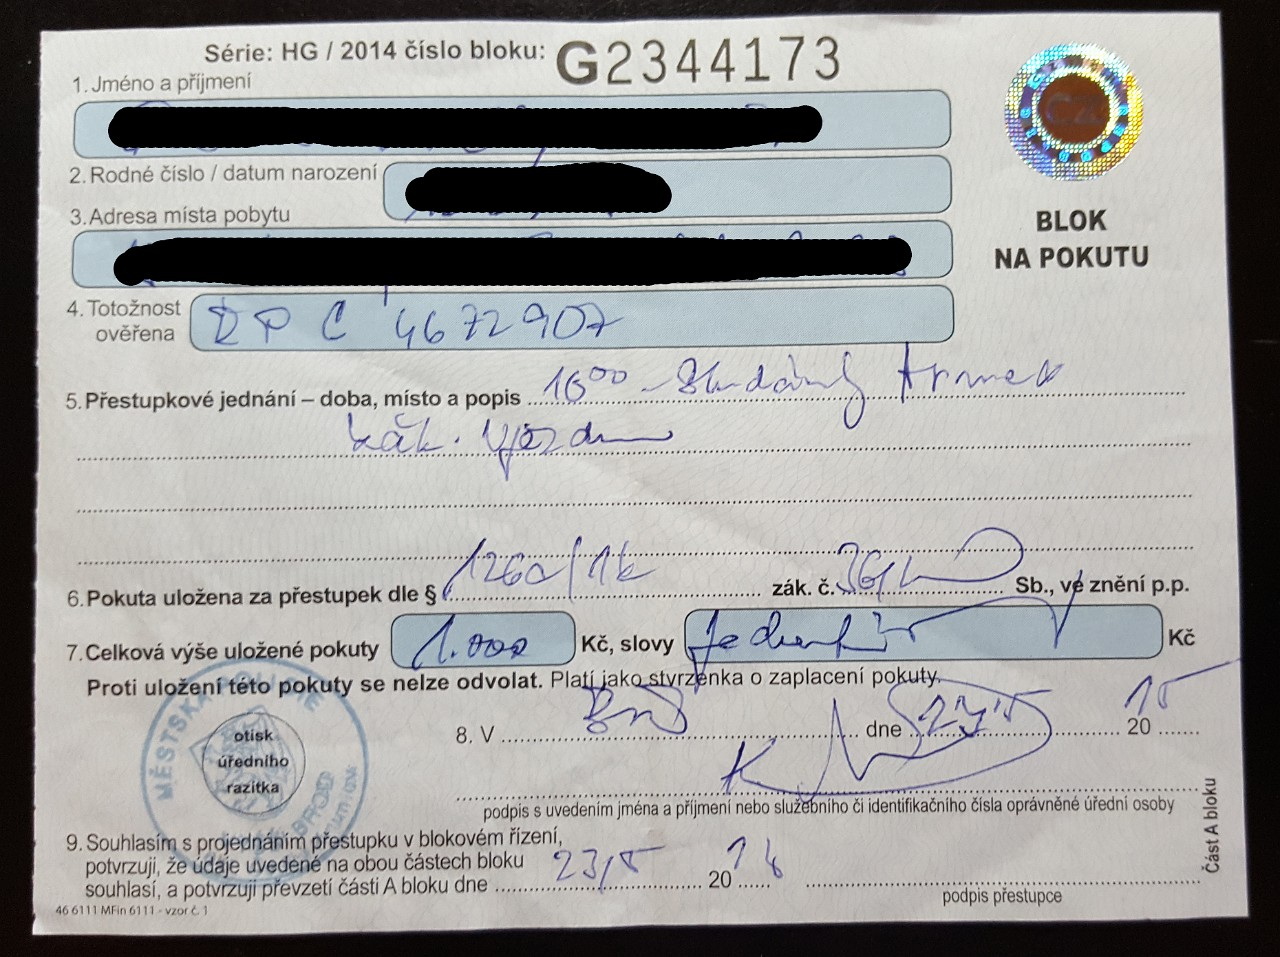 Czech traffic ticket receipt